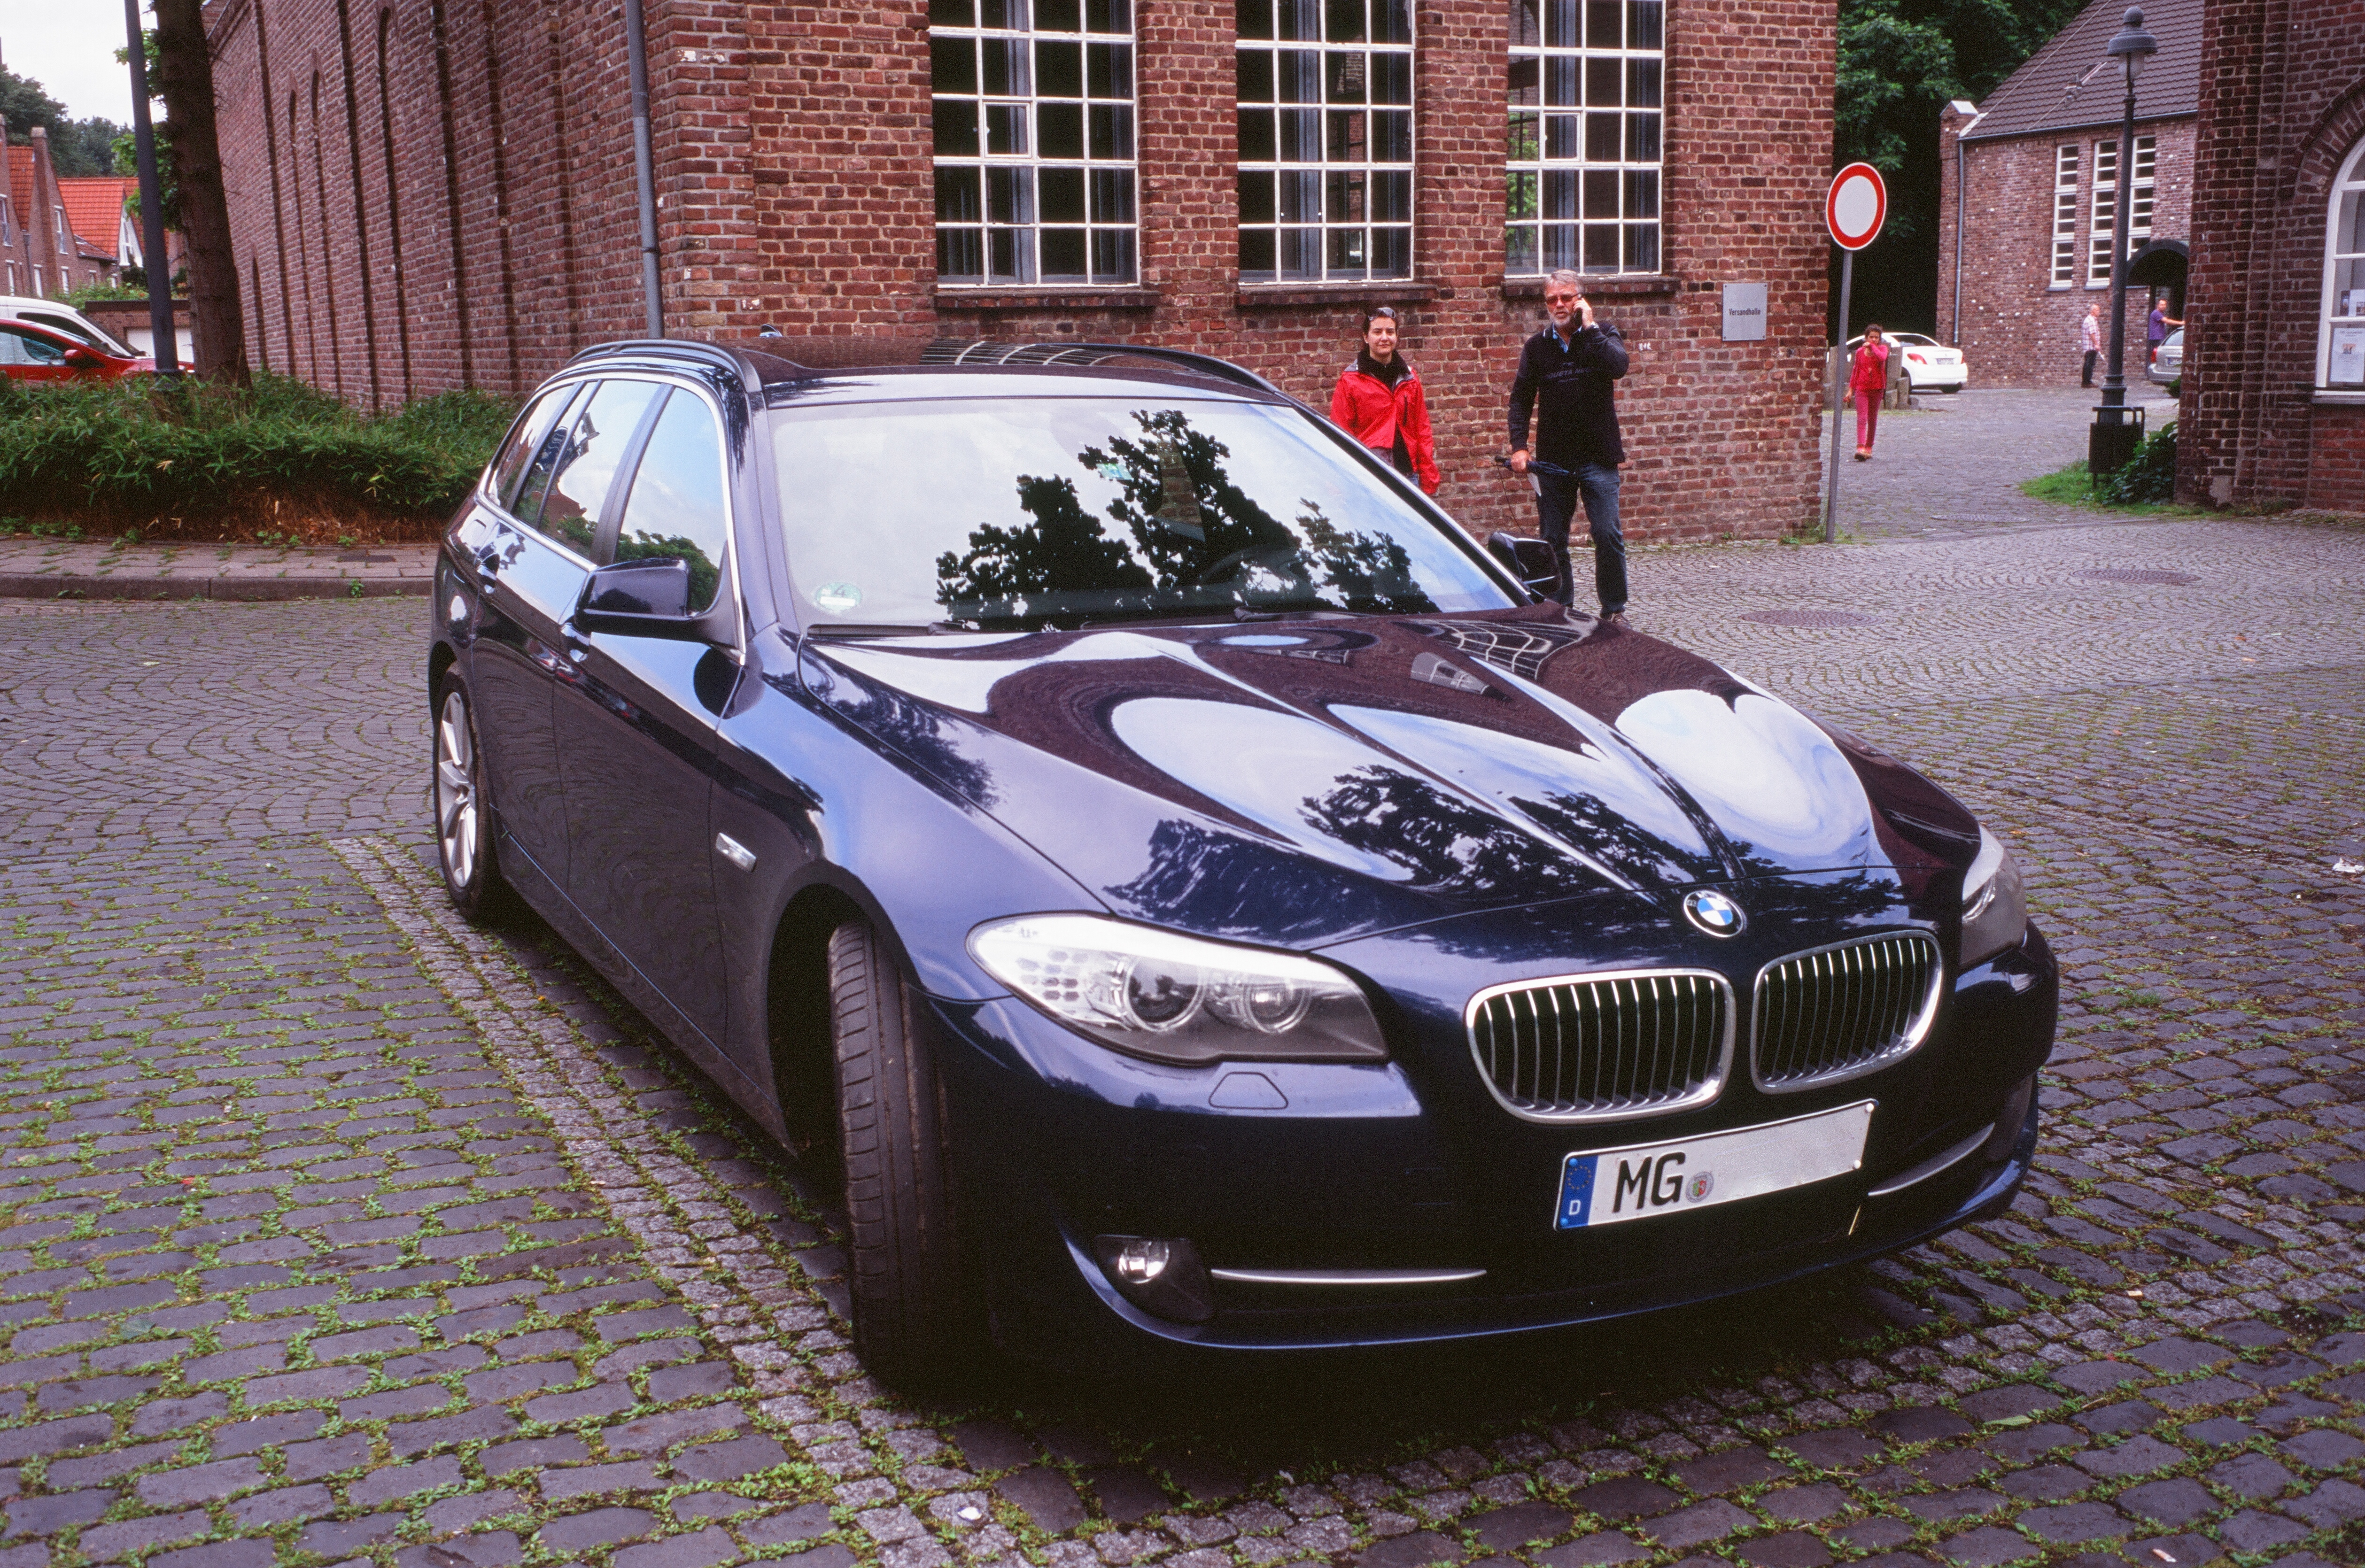 BMW 535d Touring (F11) | Flickr - Photo Sharing!